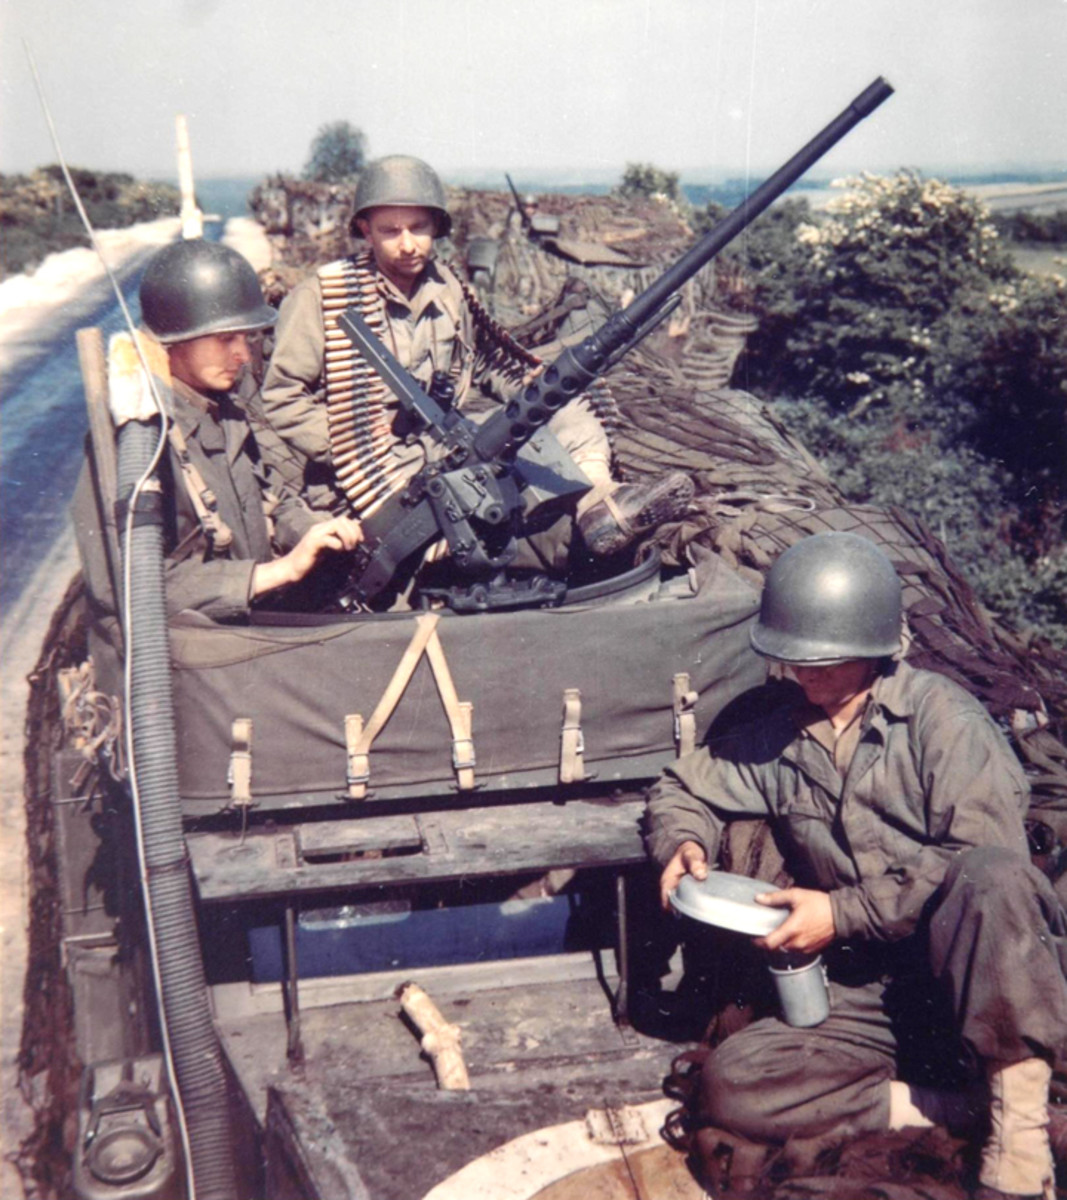 WWII color image of soldiers photographed in England. They are making final checks to the M2 machine gun mounted on their half-track.